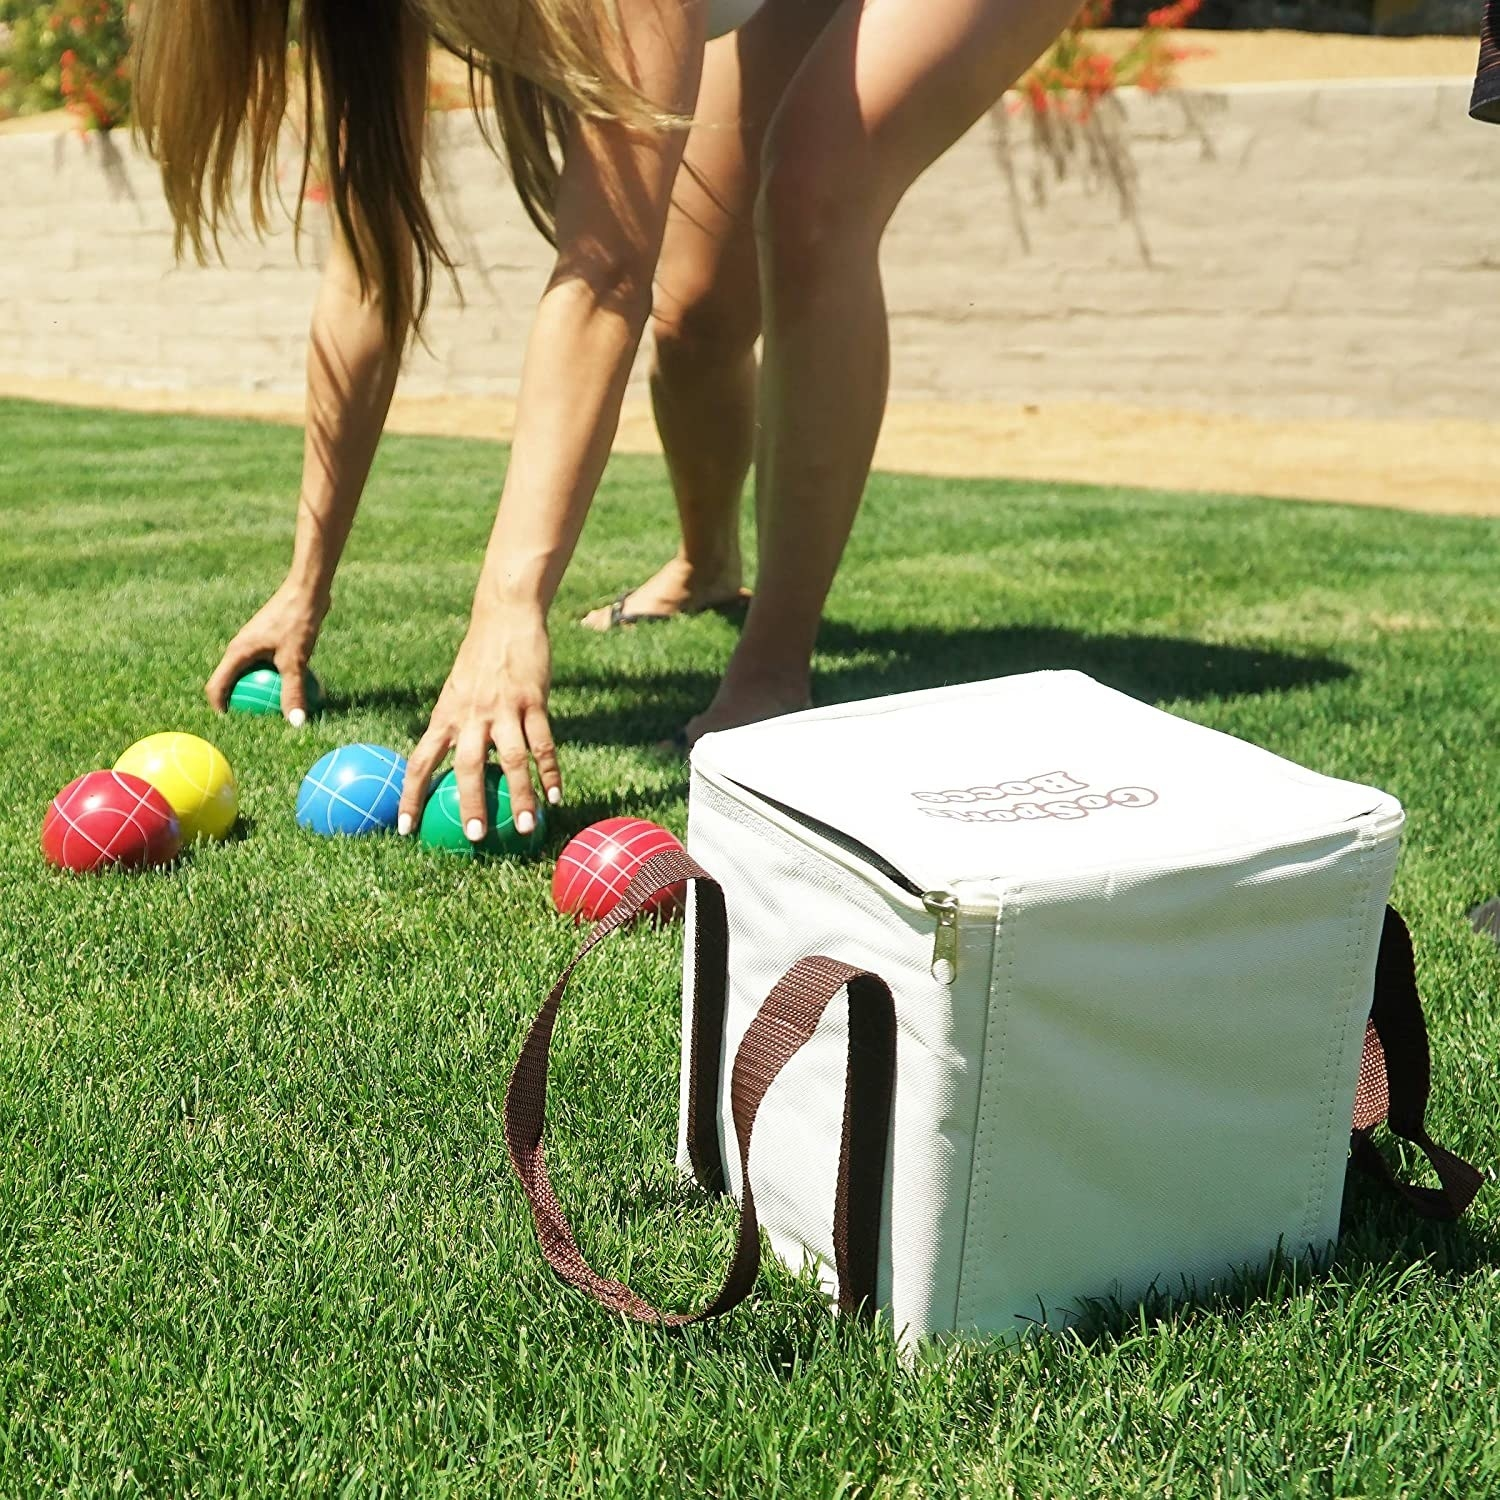 a person bending down in grass to pick up red, green, yellow, and blue bocce balls next to a white zippered square case to hold the balls in